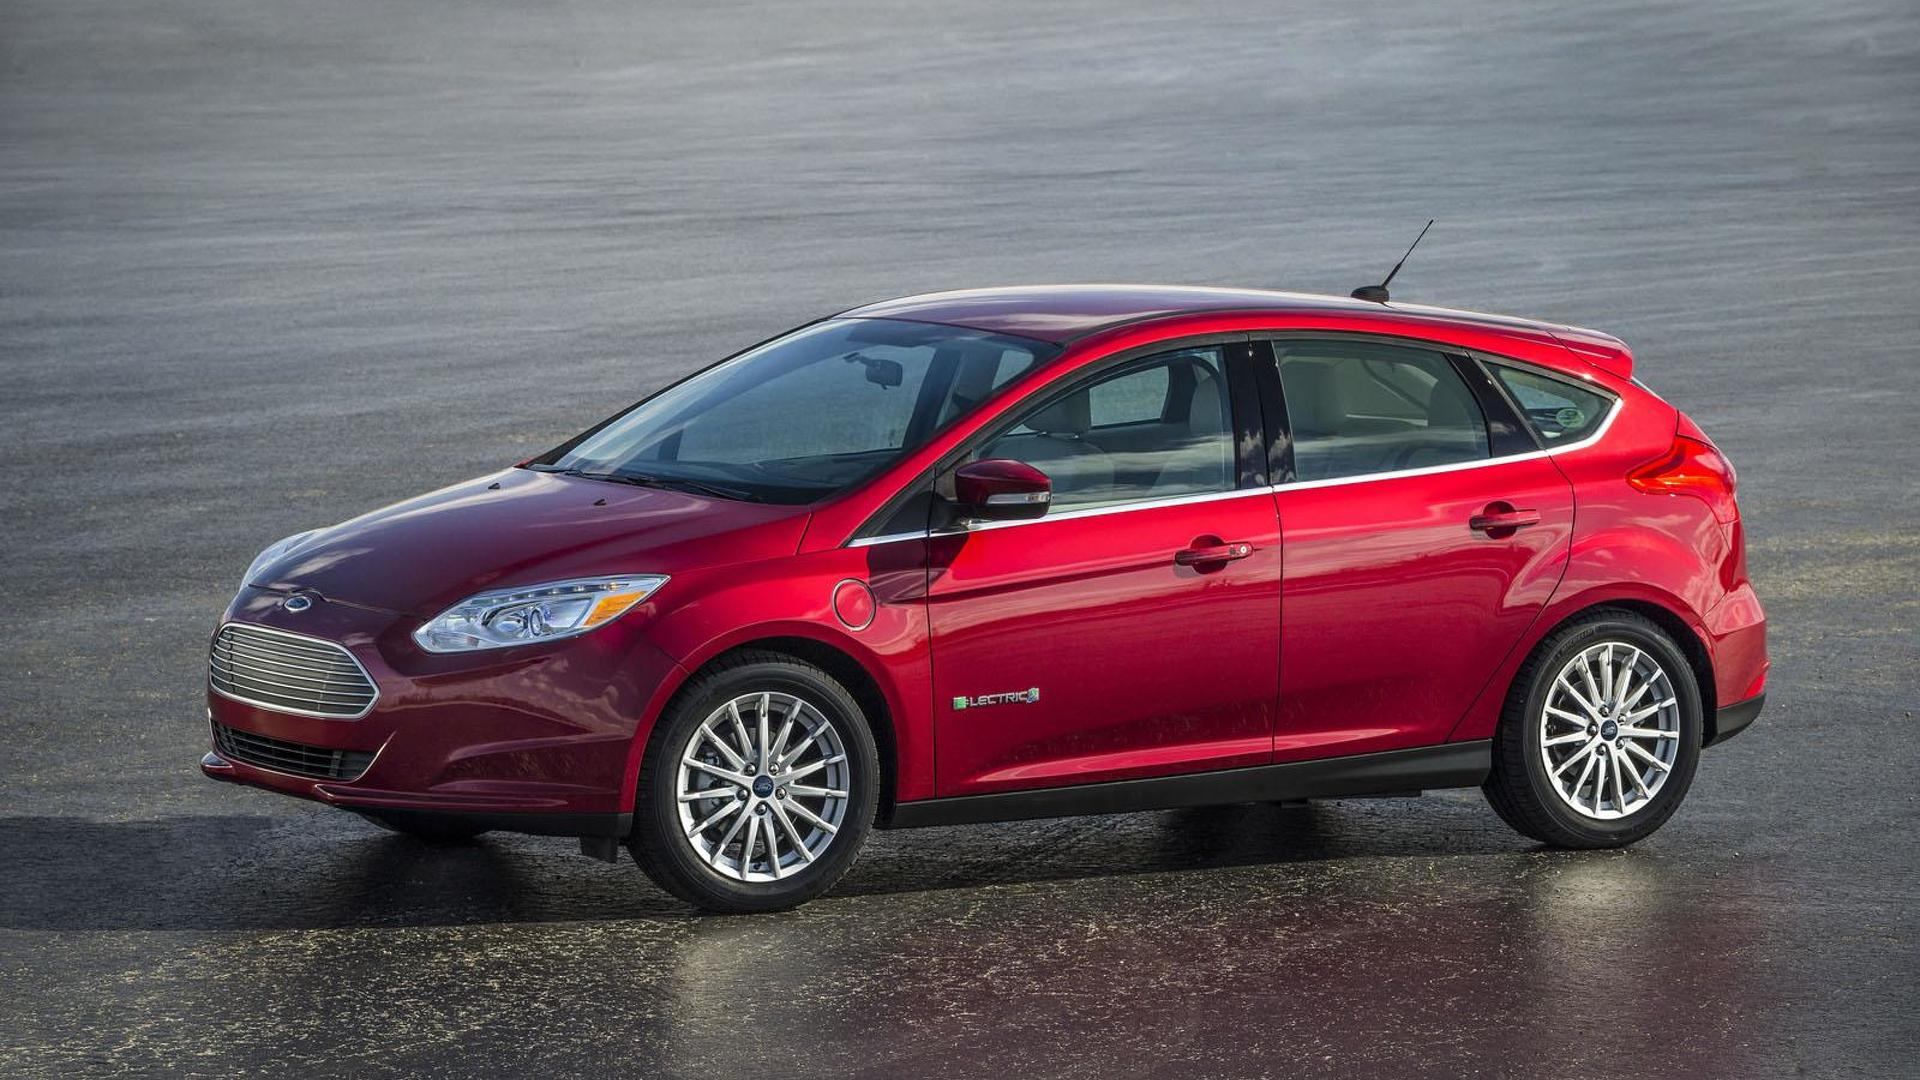 2017 Ford Focus Electric To Have 33 5 Kwh Battery For An Estimated 110 Mile Range